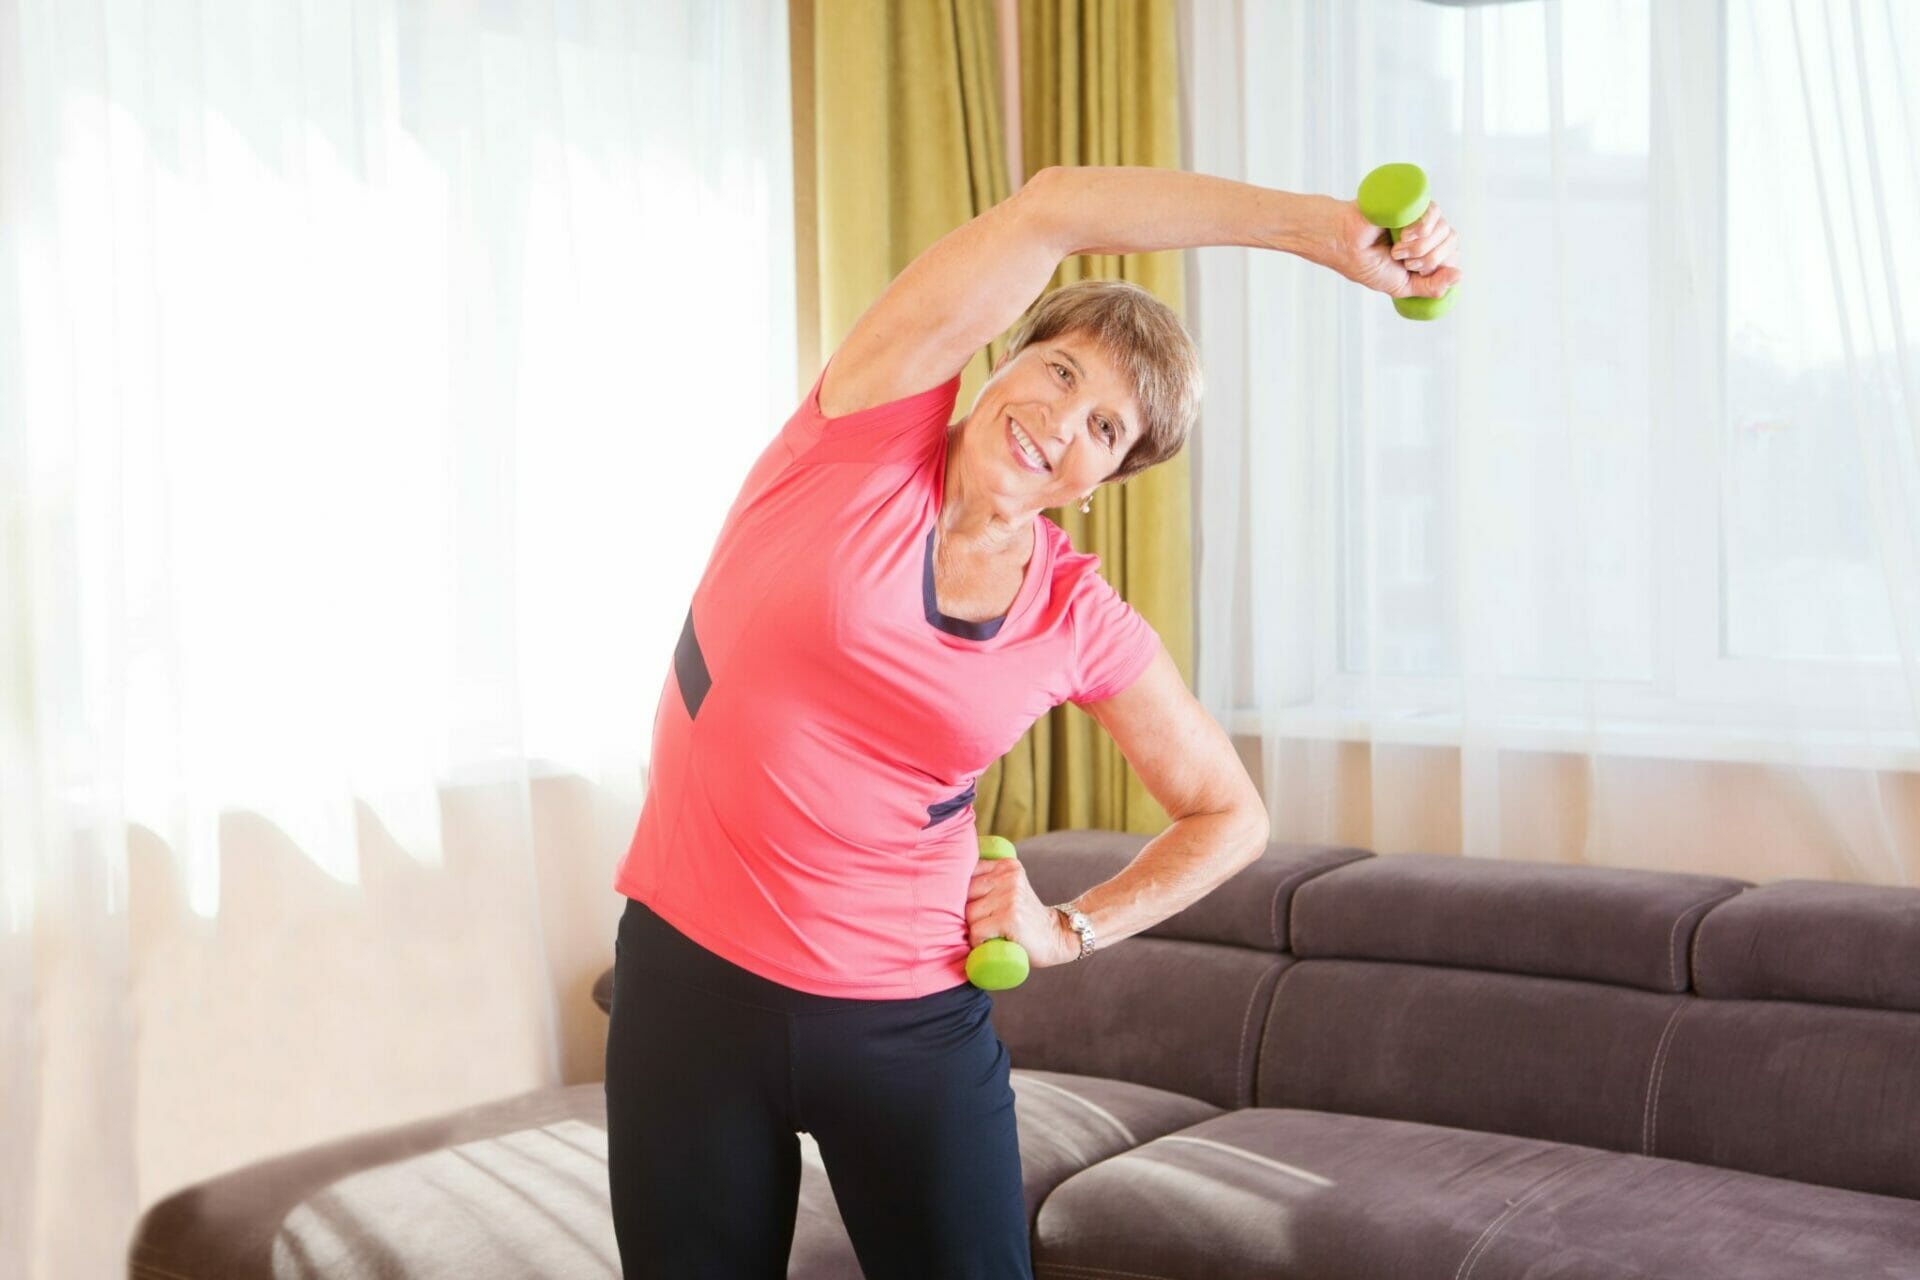 How can I stay active at home?